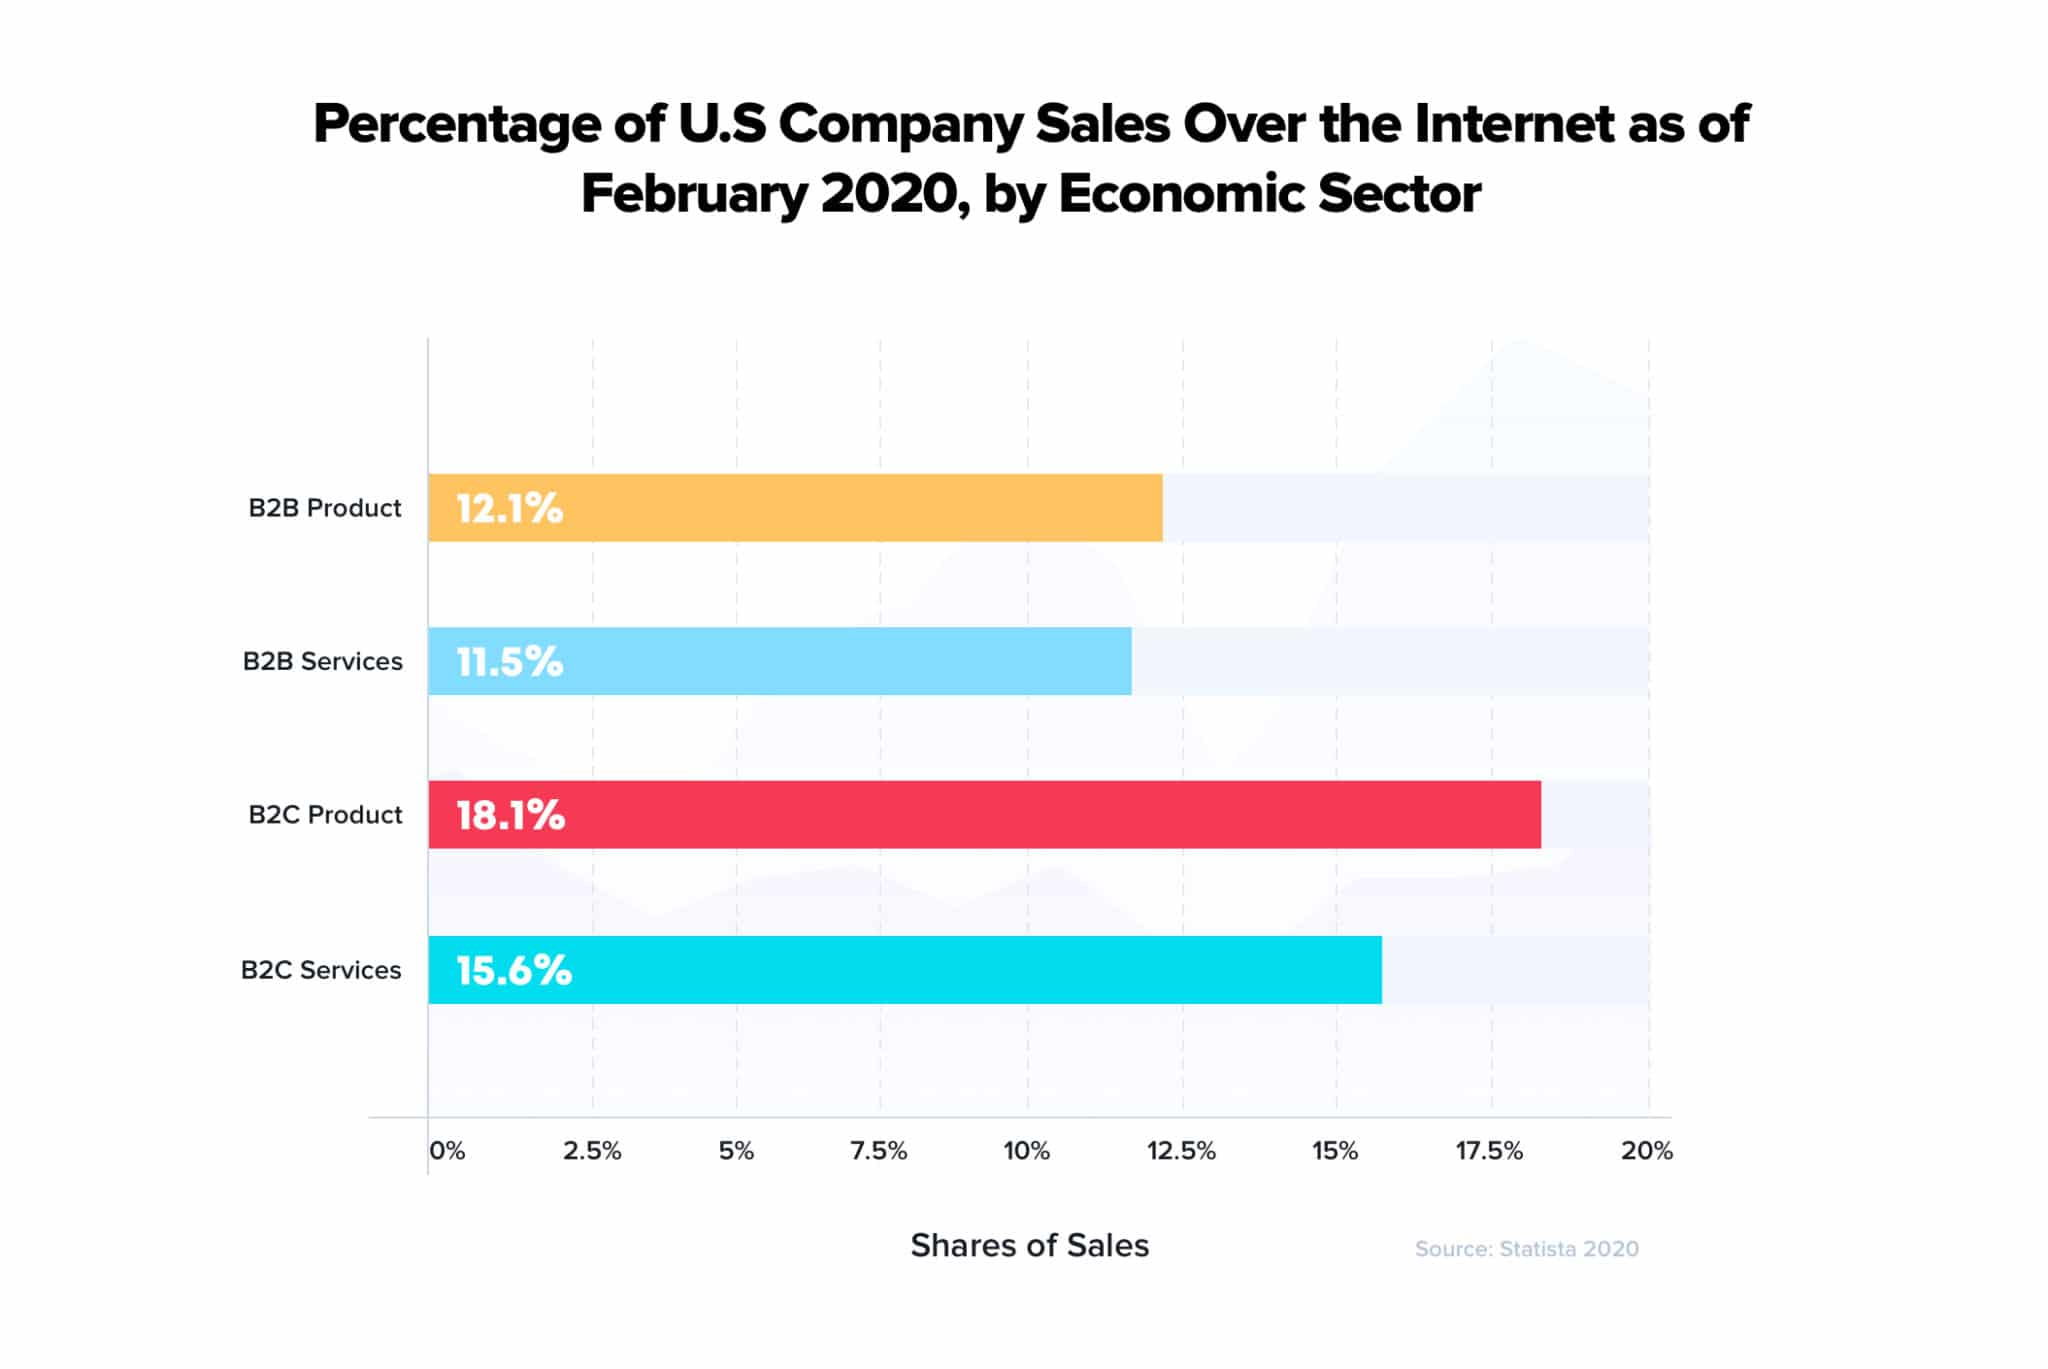 US Company Sales Over Internet